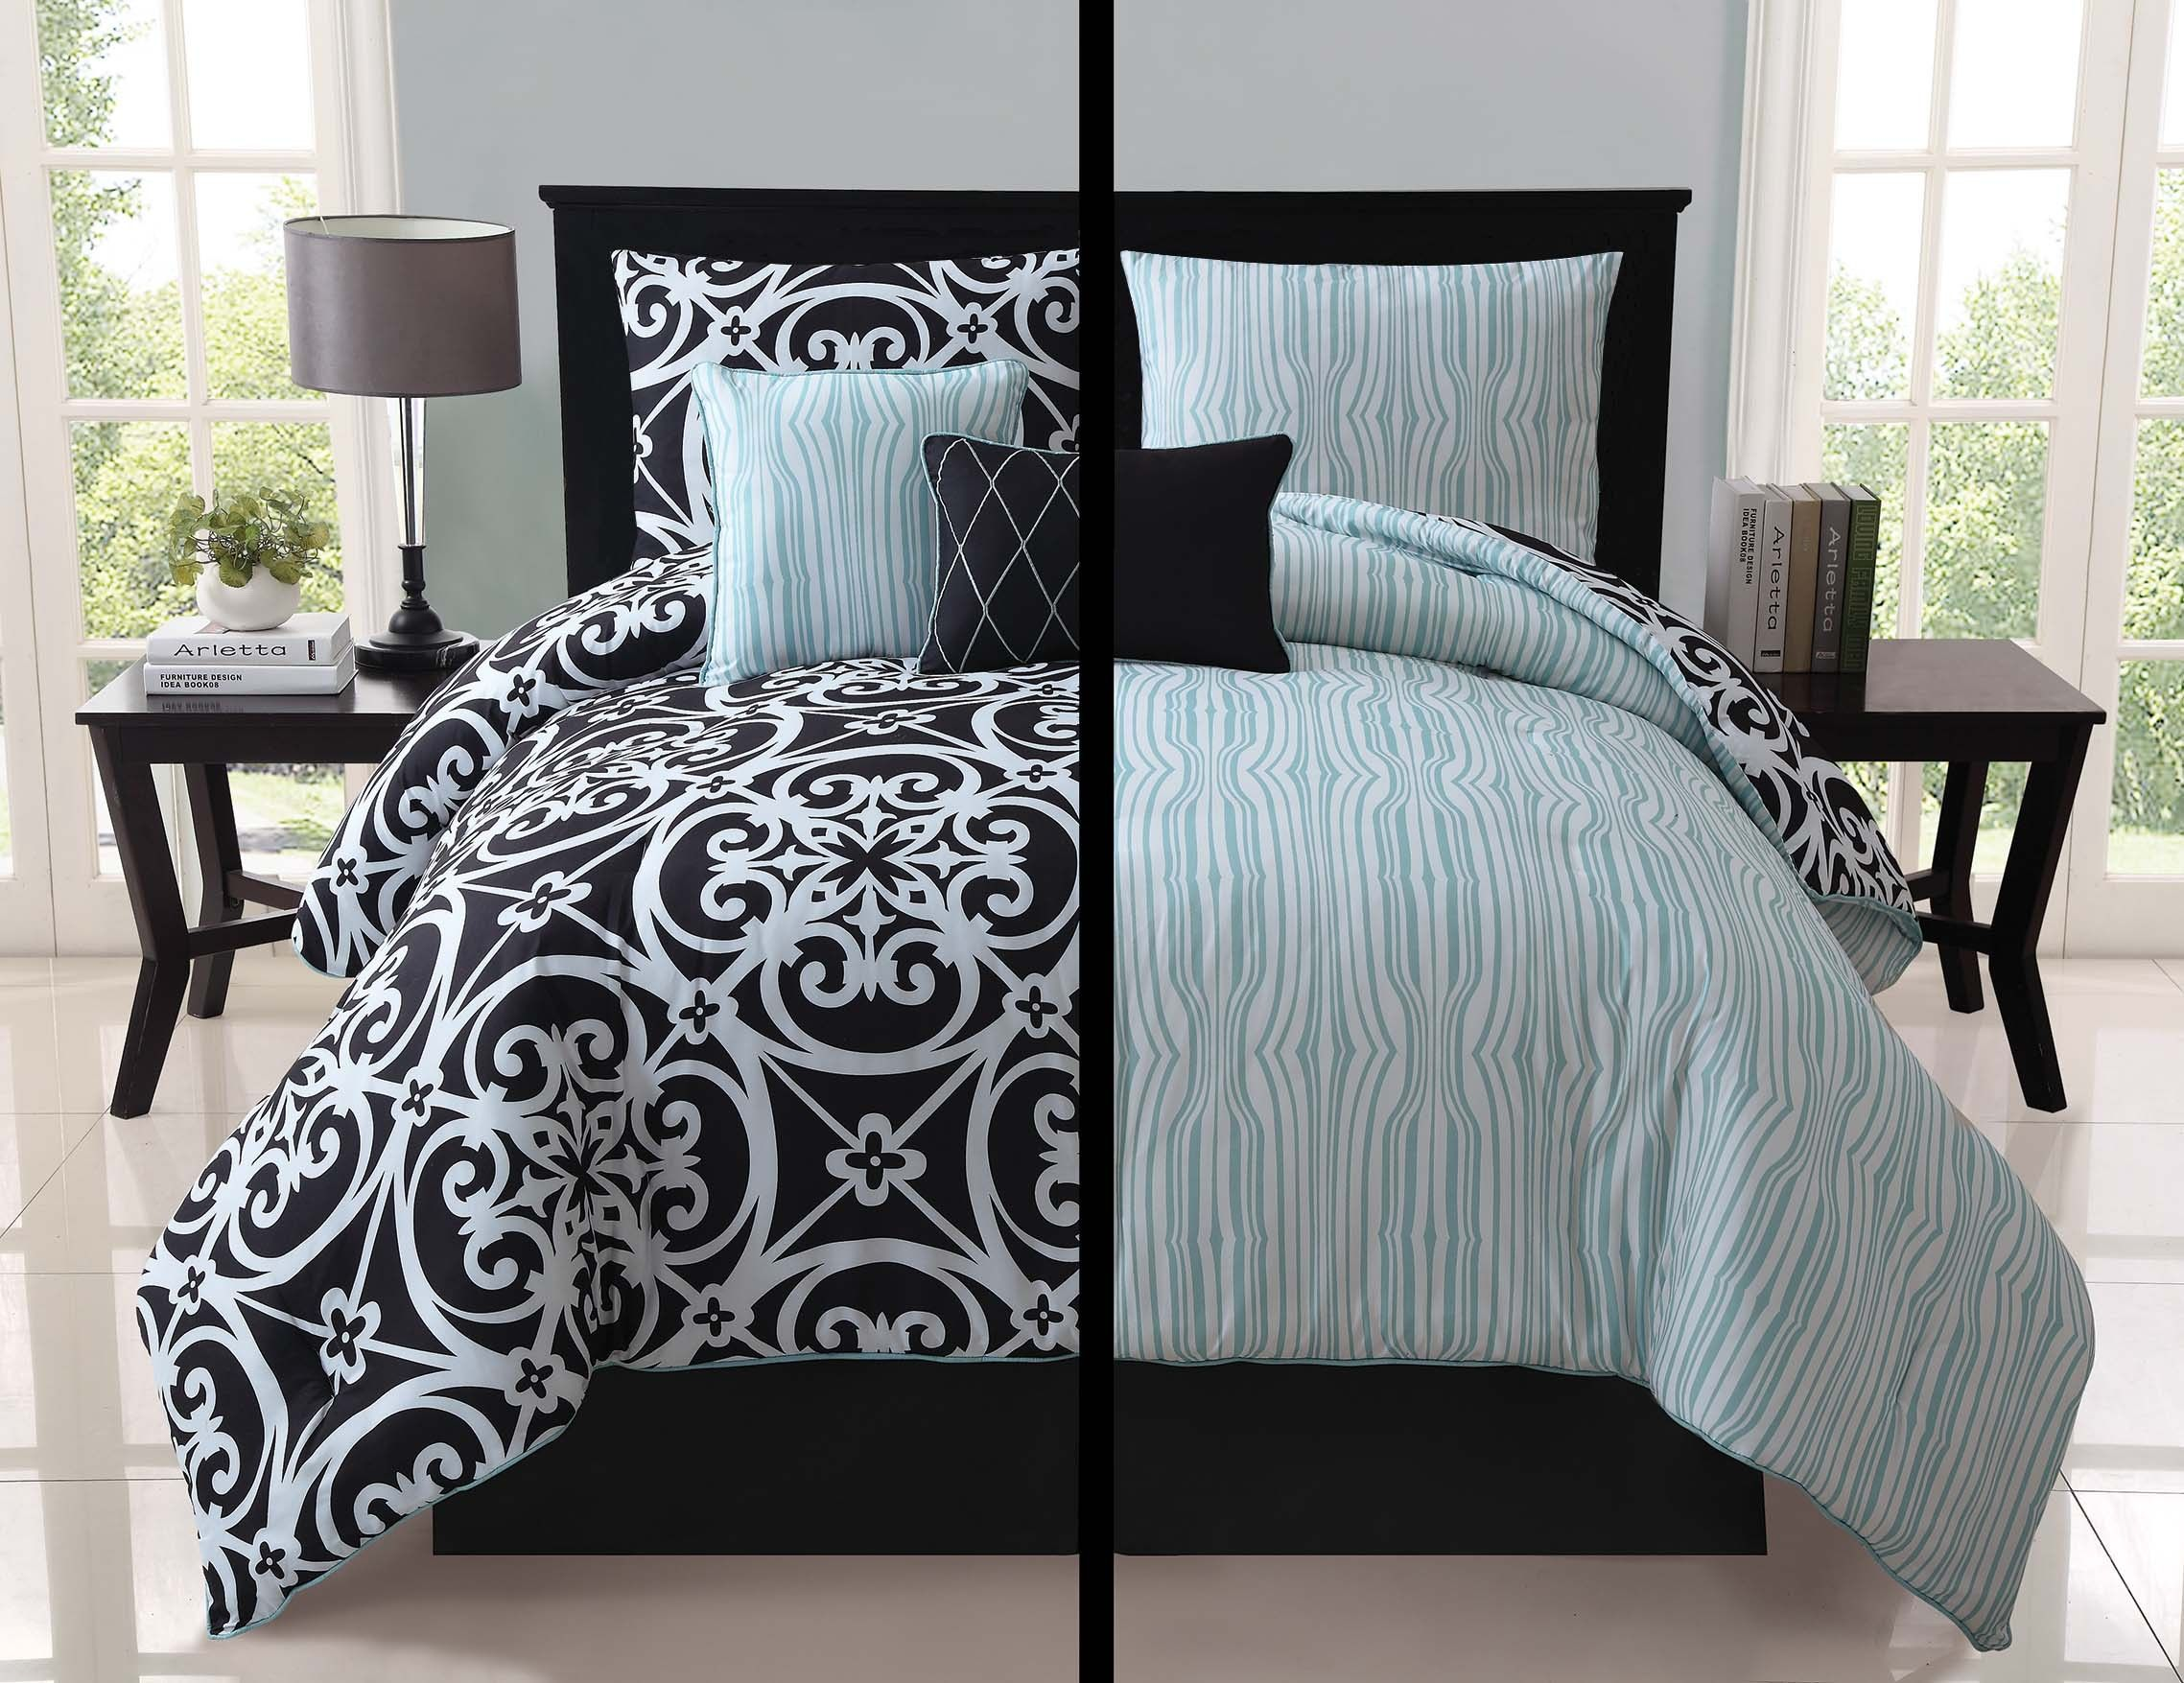 Bed sheet set black and white - Luxury Kennedy Black White Teal Reversible Comforter Set Bedding